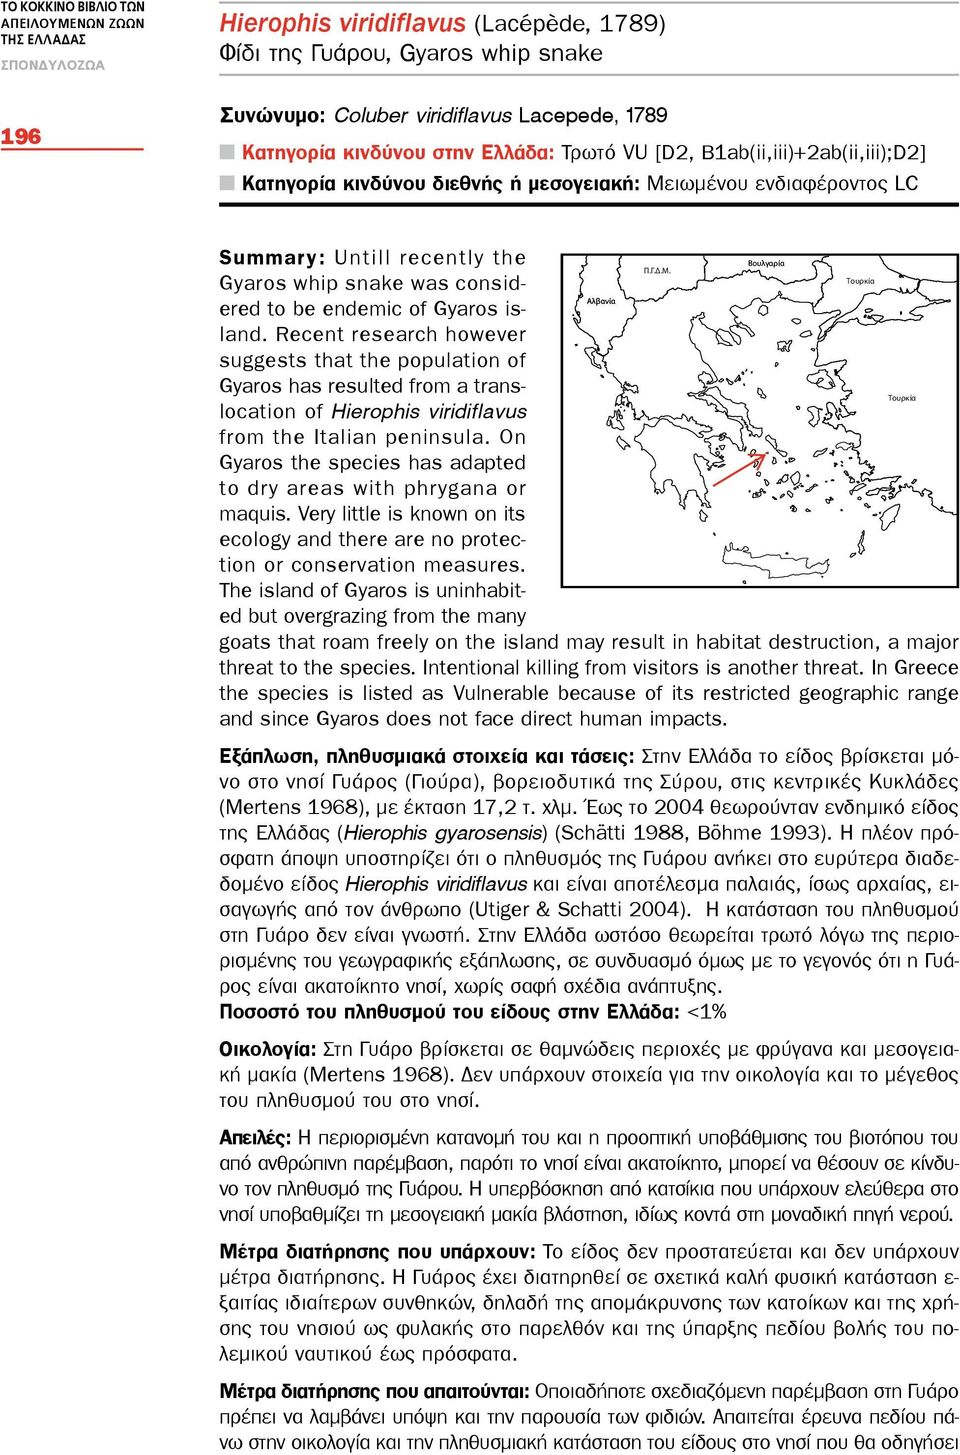 Recent research however suggests that the population of Gyaros has resulted from a translocation of Hierophis viridiflavus from the Italian peninsula.